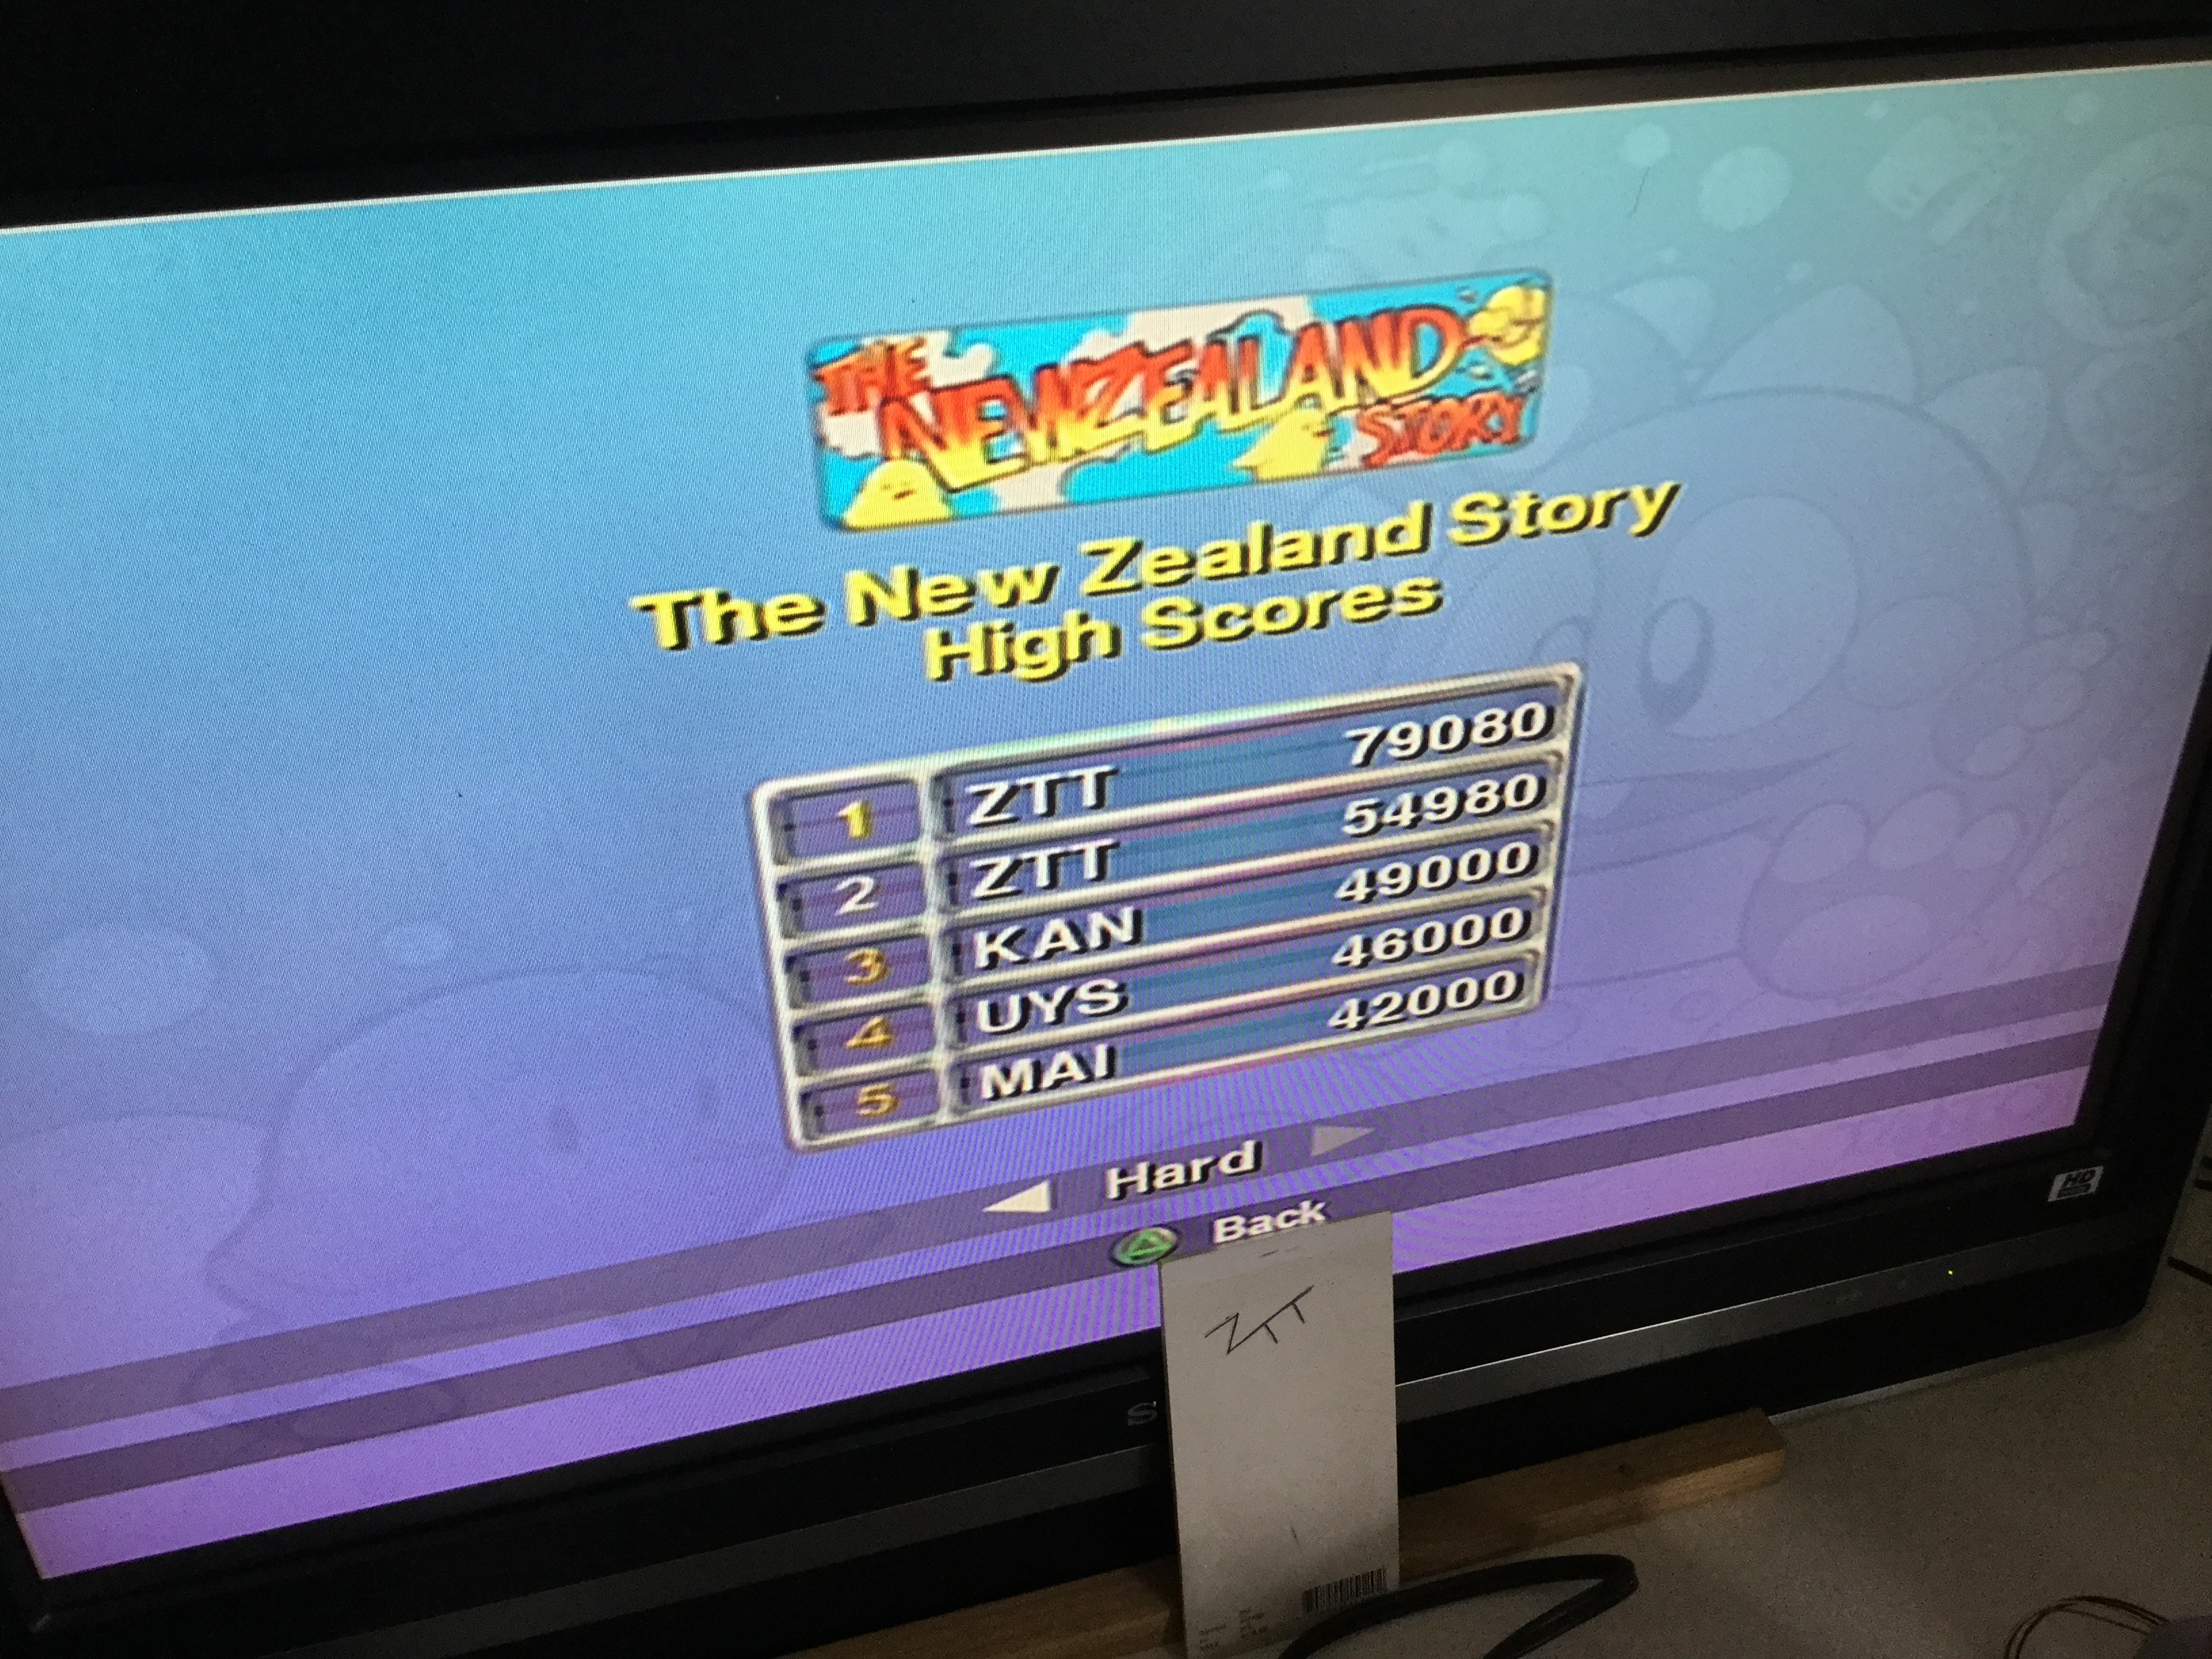 Frankie: Taito Legends: The New Zealand Story [Difficult] (Playstation 2) 79,080 points on 2018-03-24 05:24:52